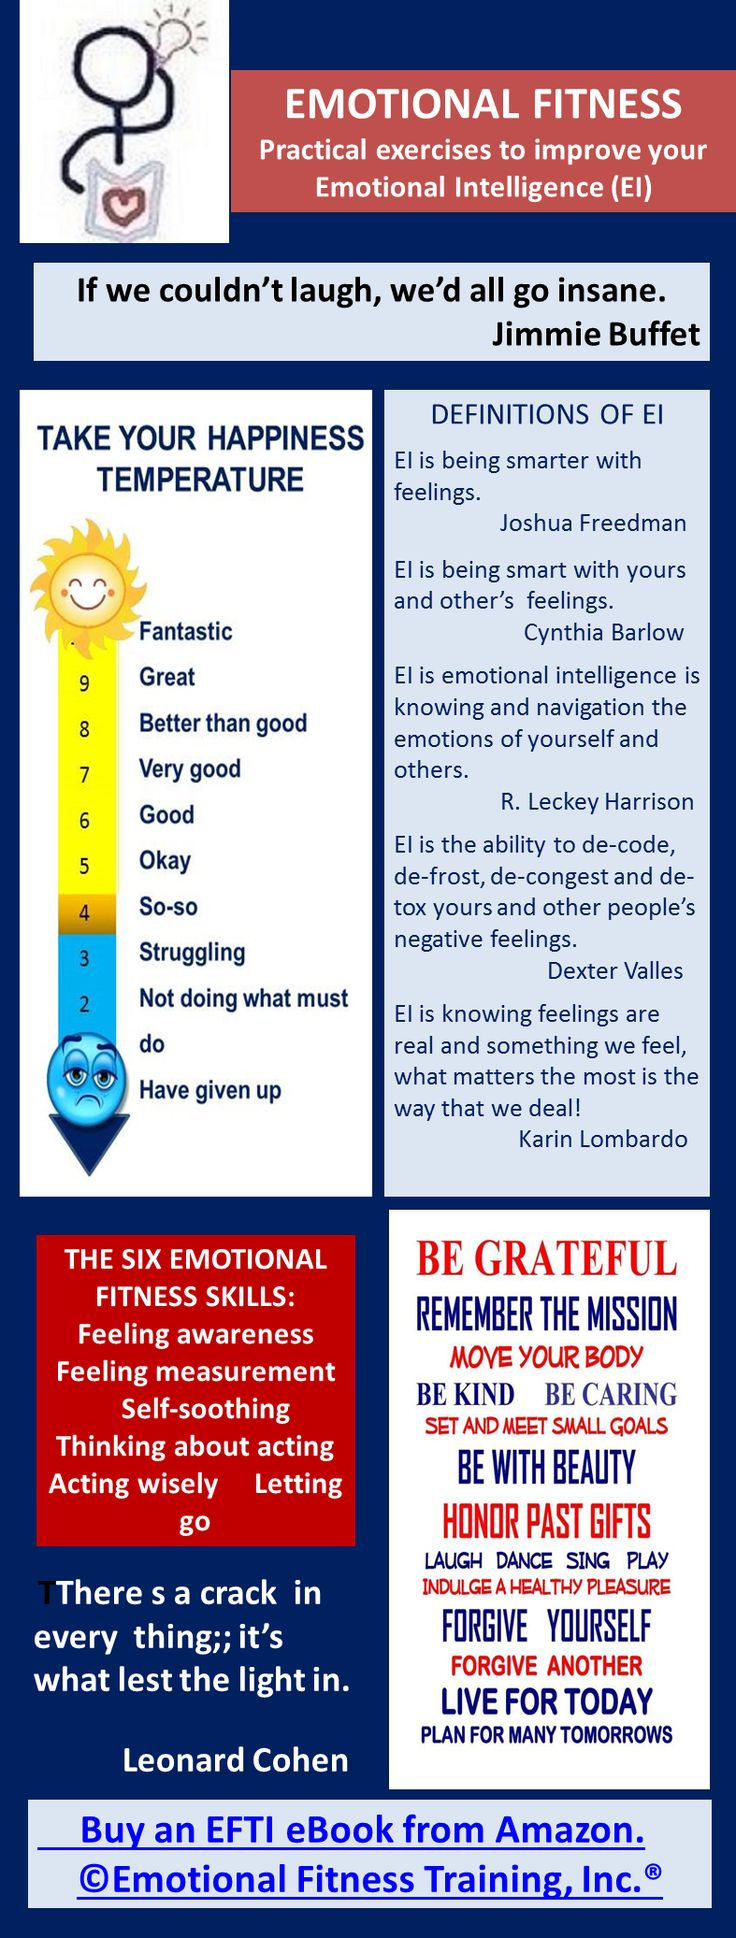 worksheet Emotional Intelligence Worksheets 1000 ideas about emotional intelligence on pinterest psychology curious and fitness hope this satisfies that a bit